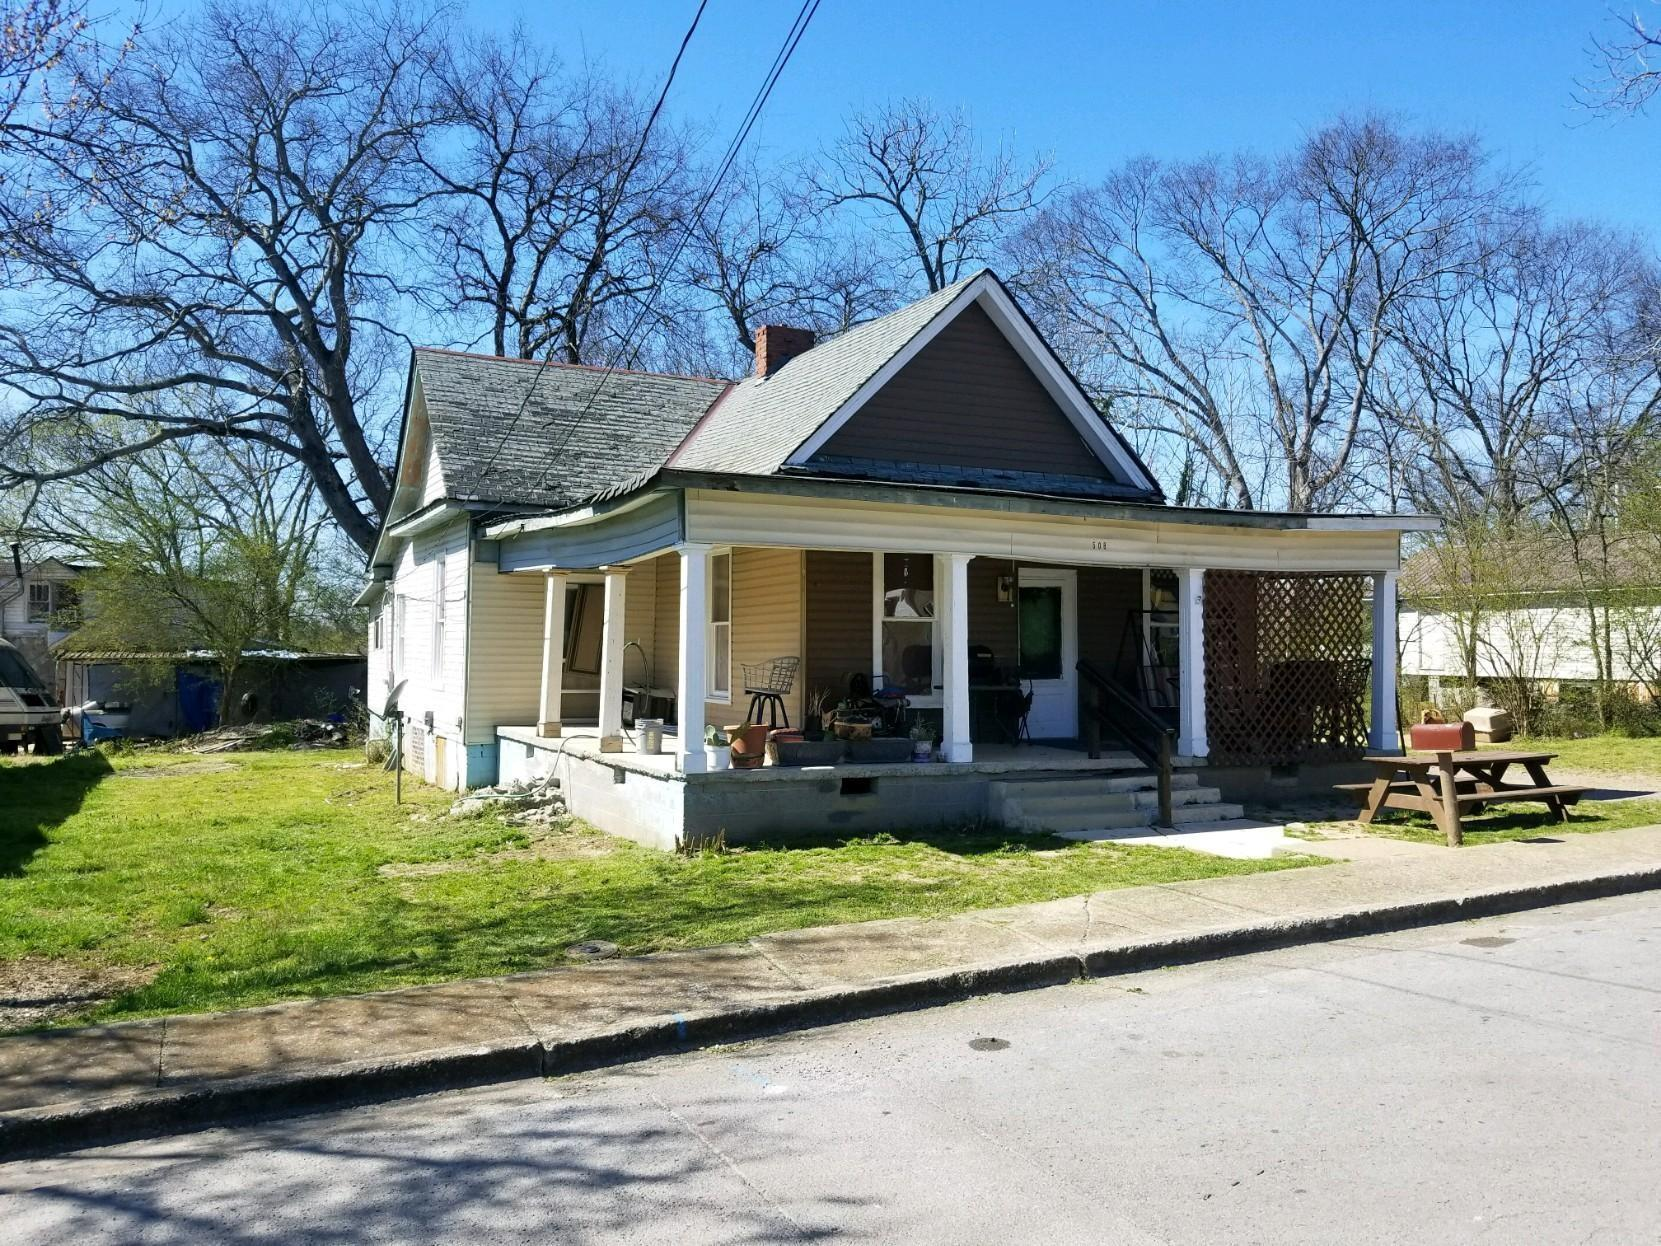 508 Moody St, Shelbyville, TN 37160 - Shelbyville, TN real estate listing